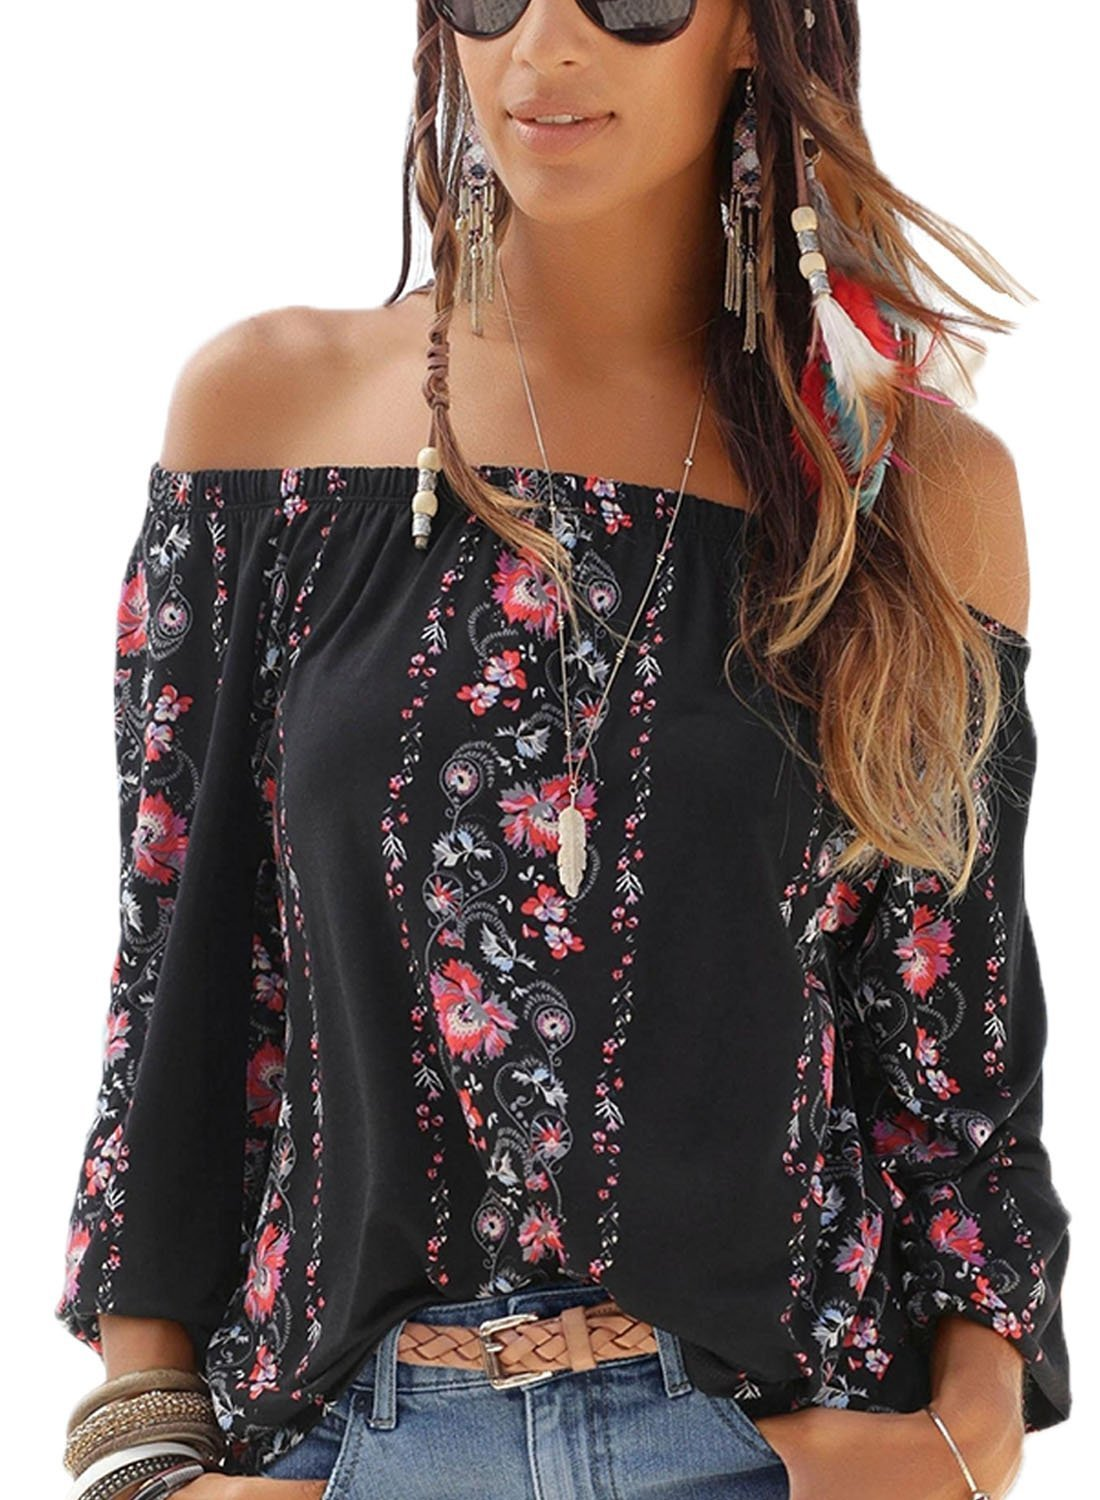 Asvivid Womens Casual Off The Shoulder Shirt Boho Floral Print Long Sleeve Loose Blouses Tops S Black